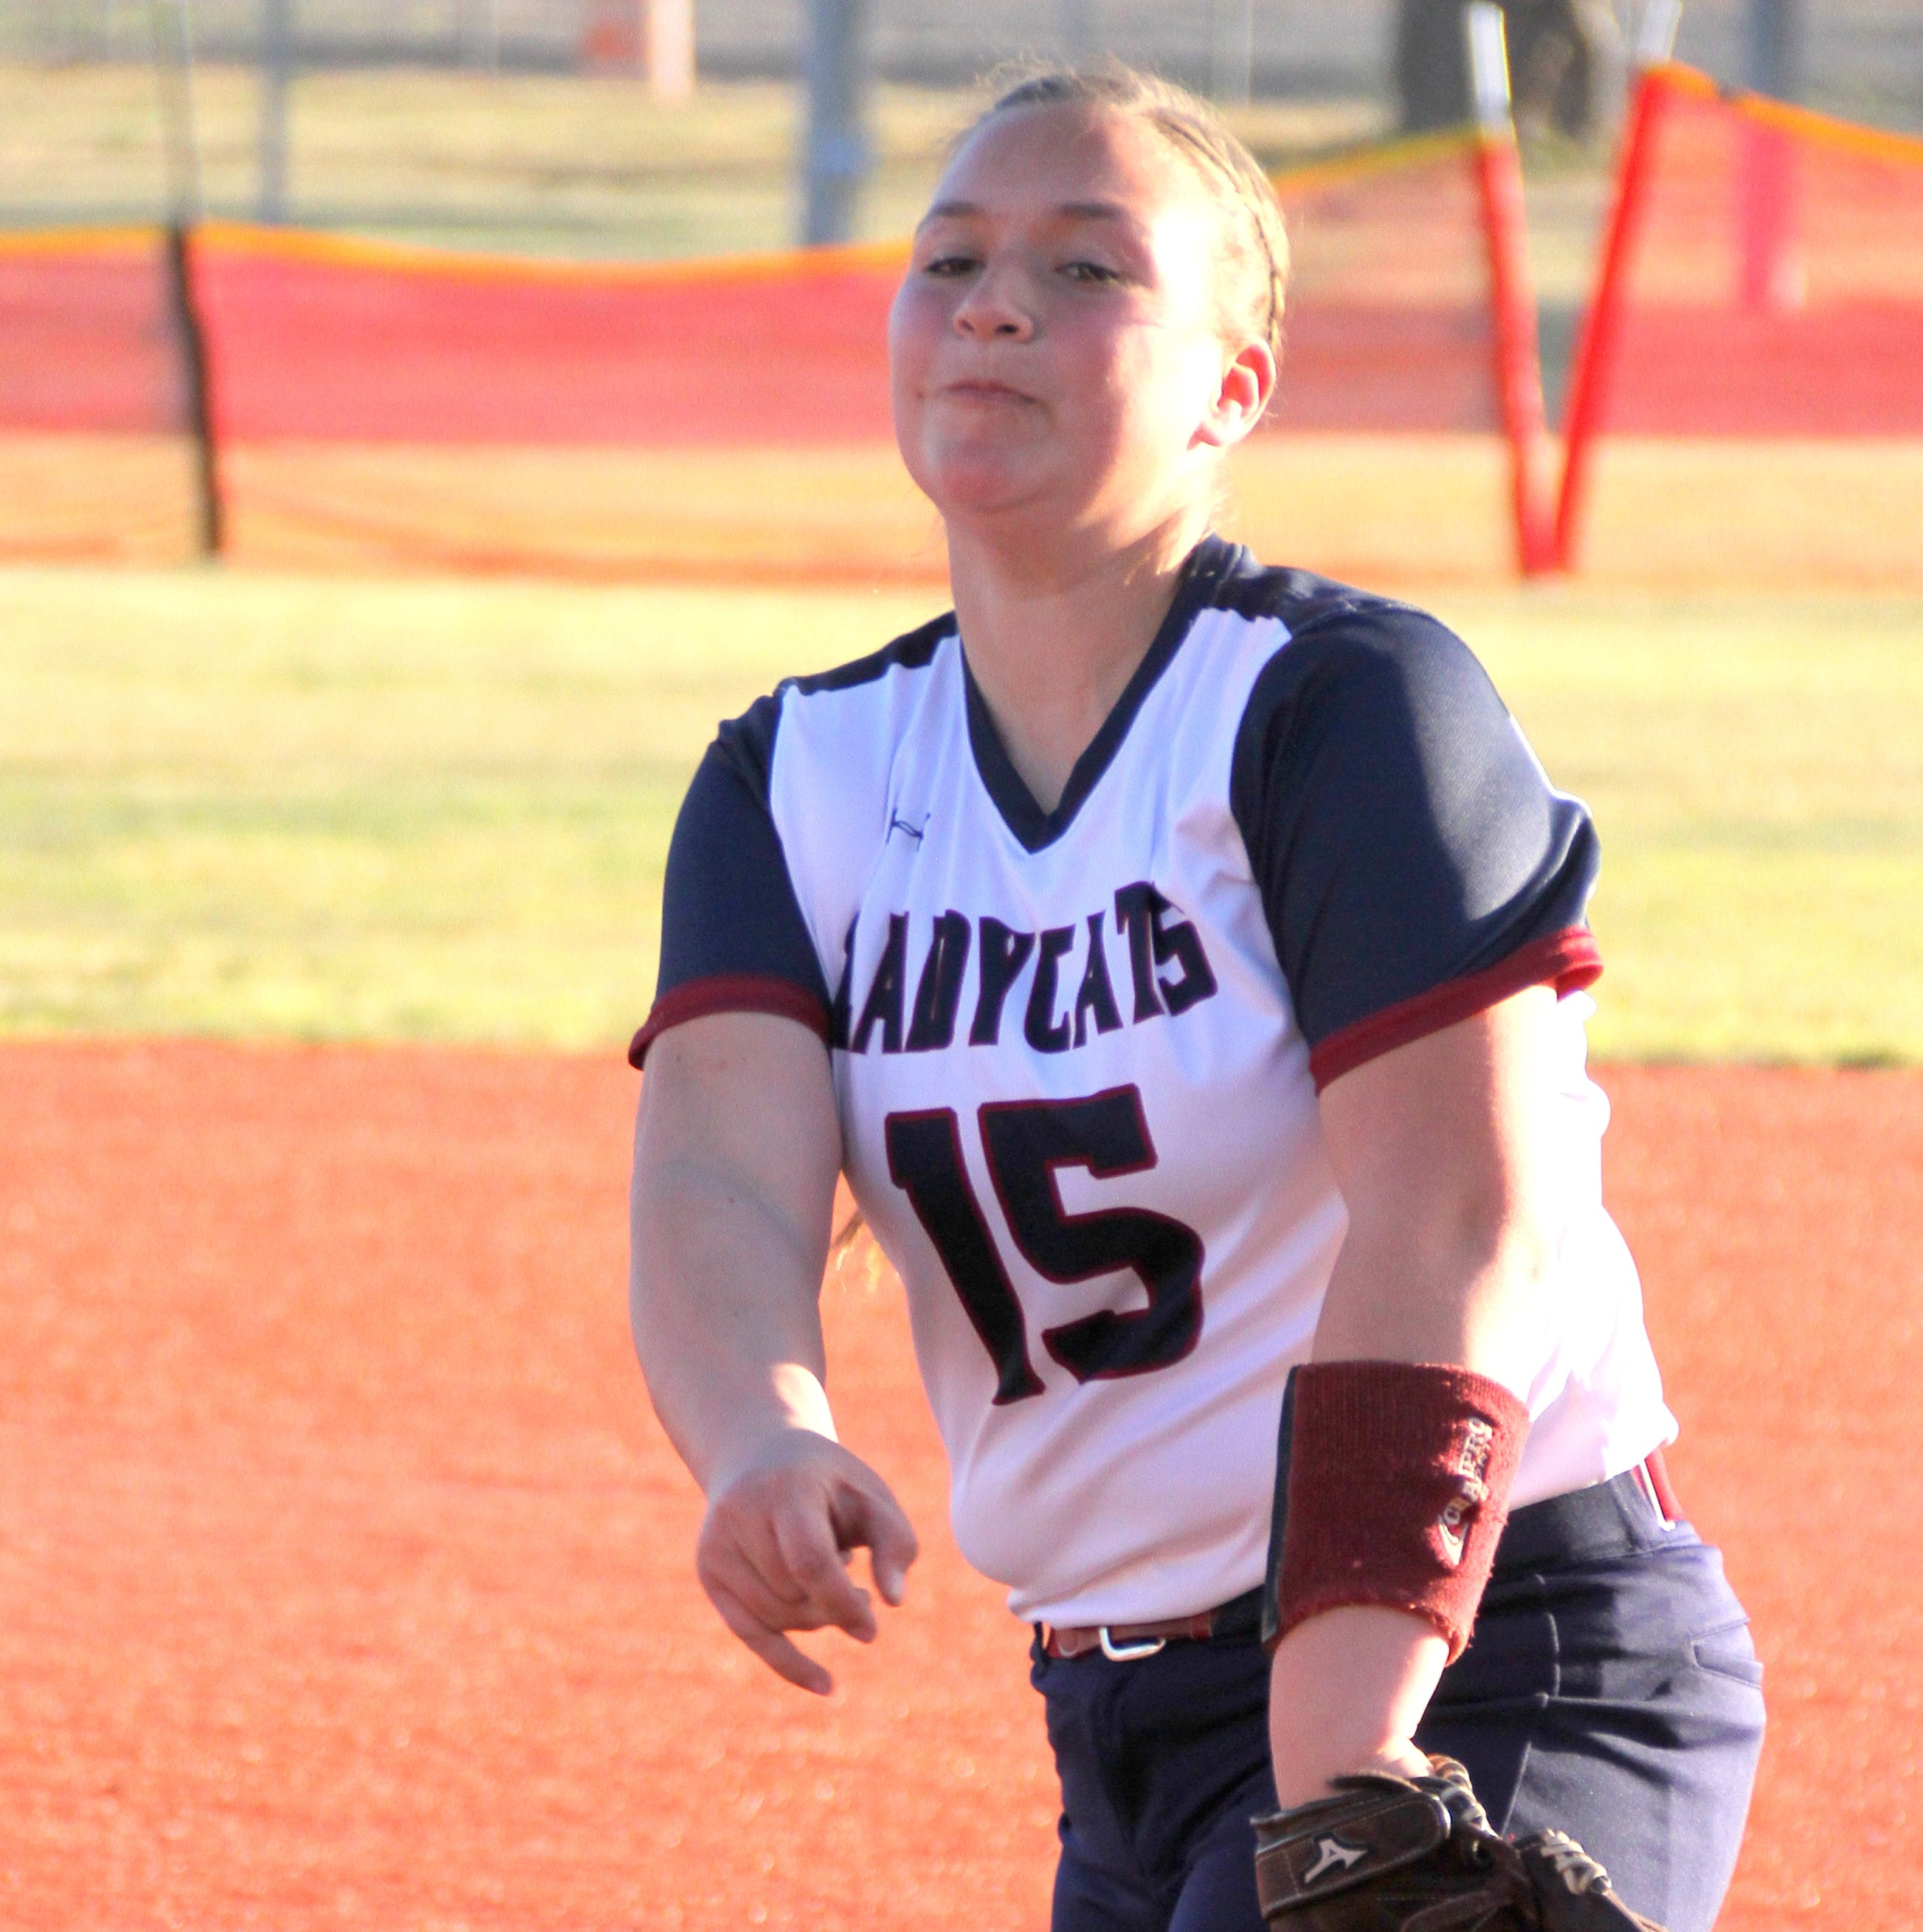 Deming High Lady 'Cats blanked by Oñate Knights 11-0 in District 3-5A softball